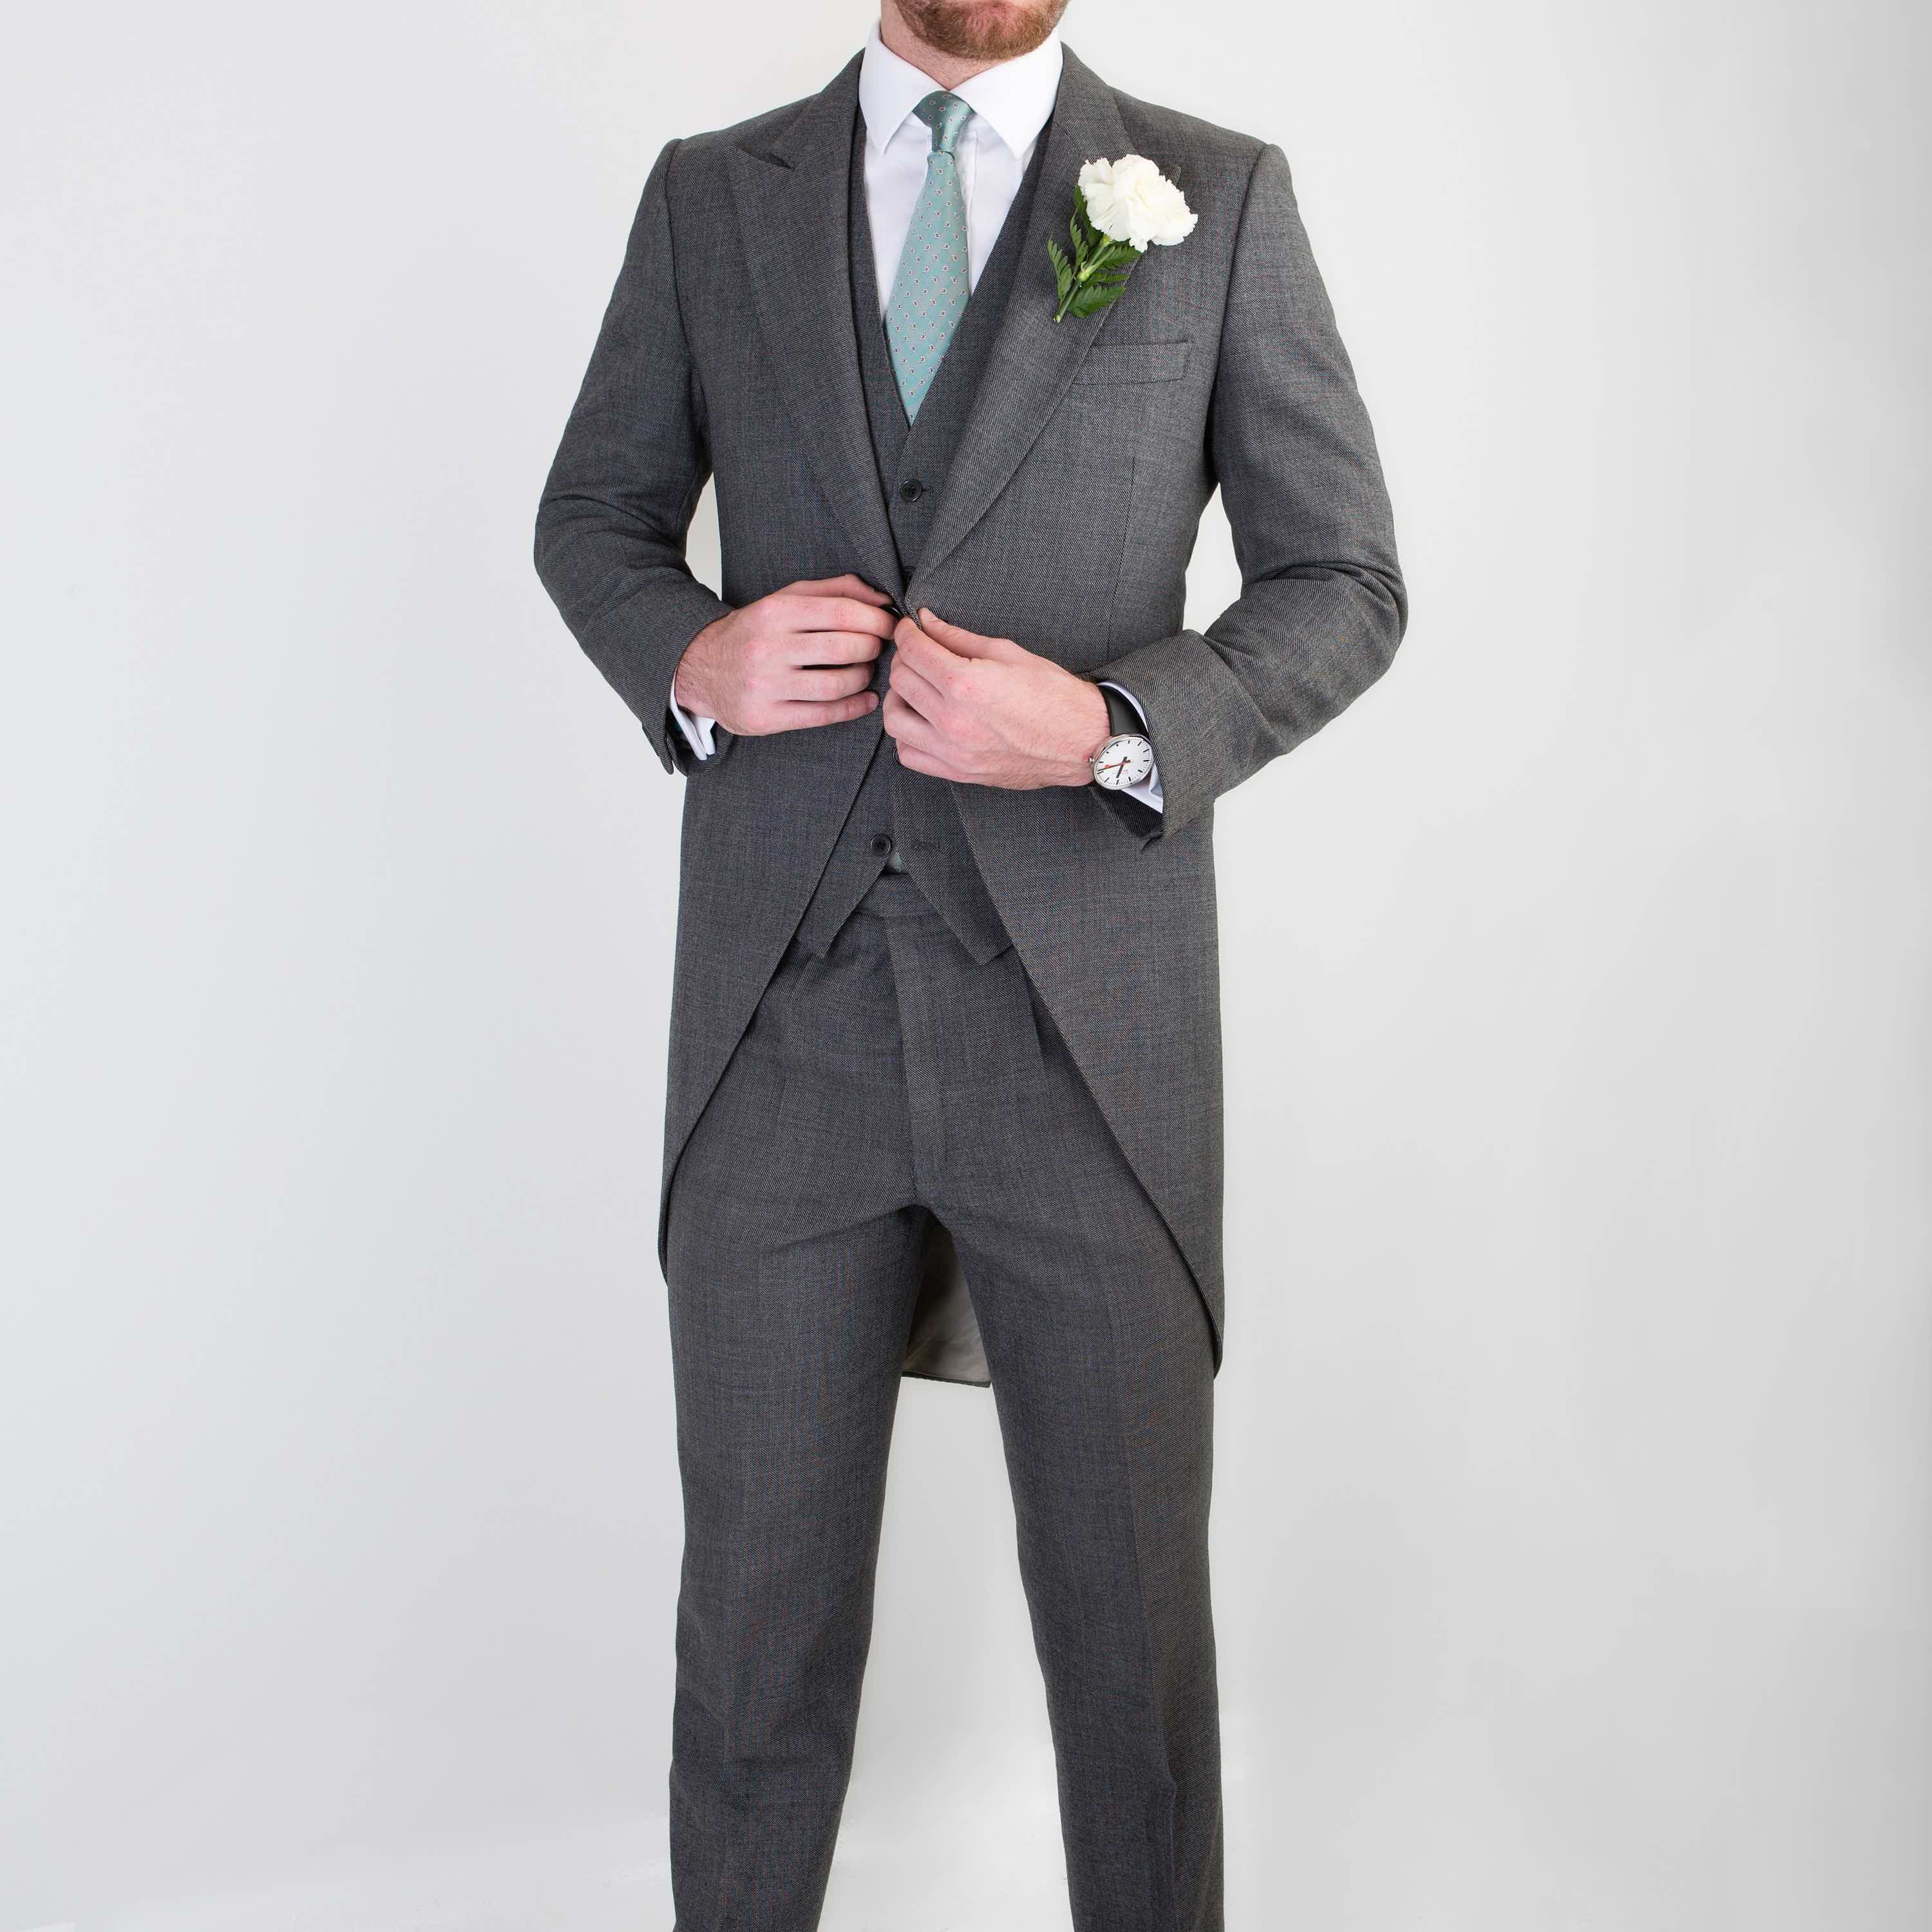 Bespoke three piece wedding suit with morning coat by Mullen and Mullen bespoke gentlemans tailors